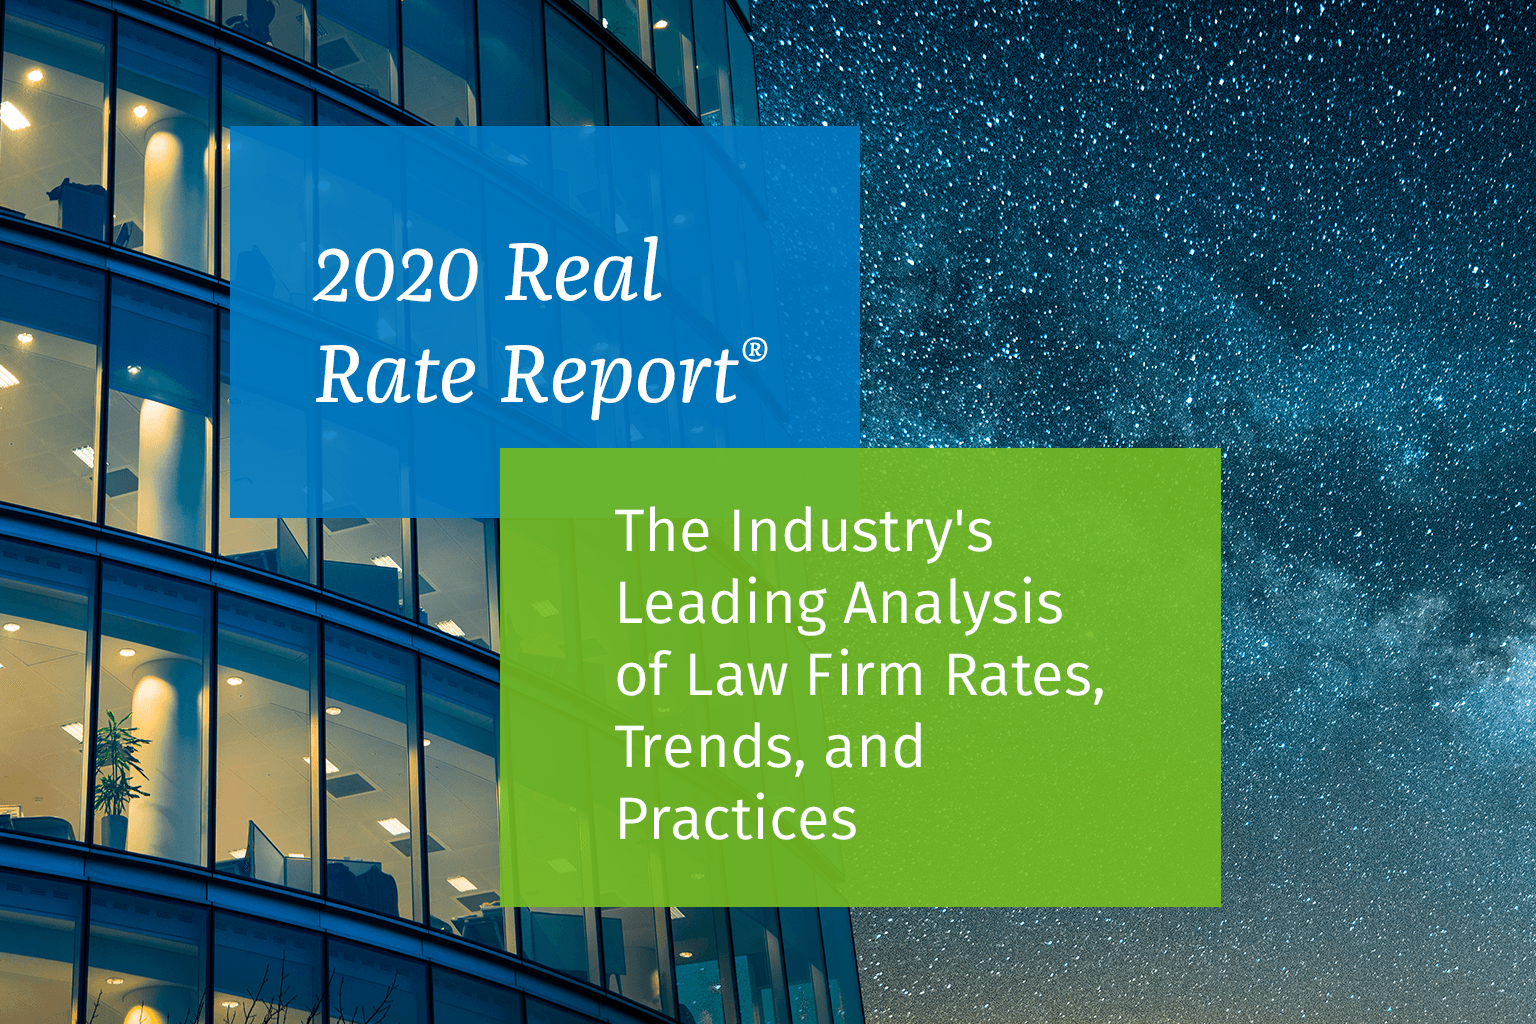 2020 Real Rate Report